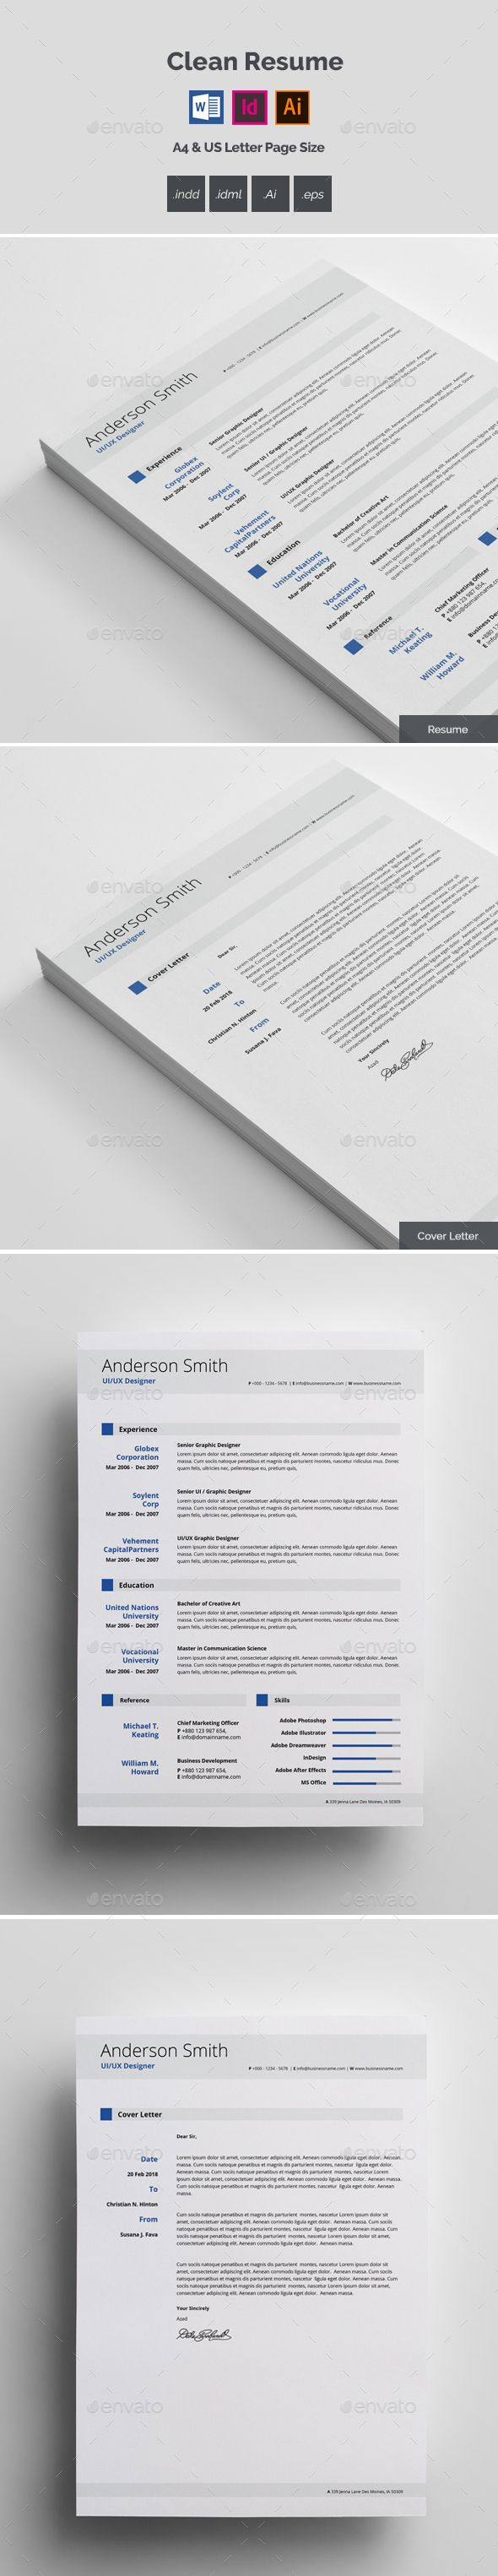 Resume Text Size Clean Resume Template Vector Eps Indesign Indd Ai Illustrator Ms .